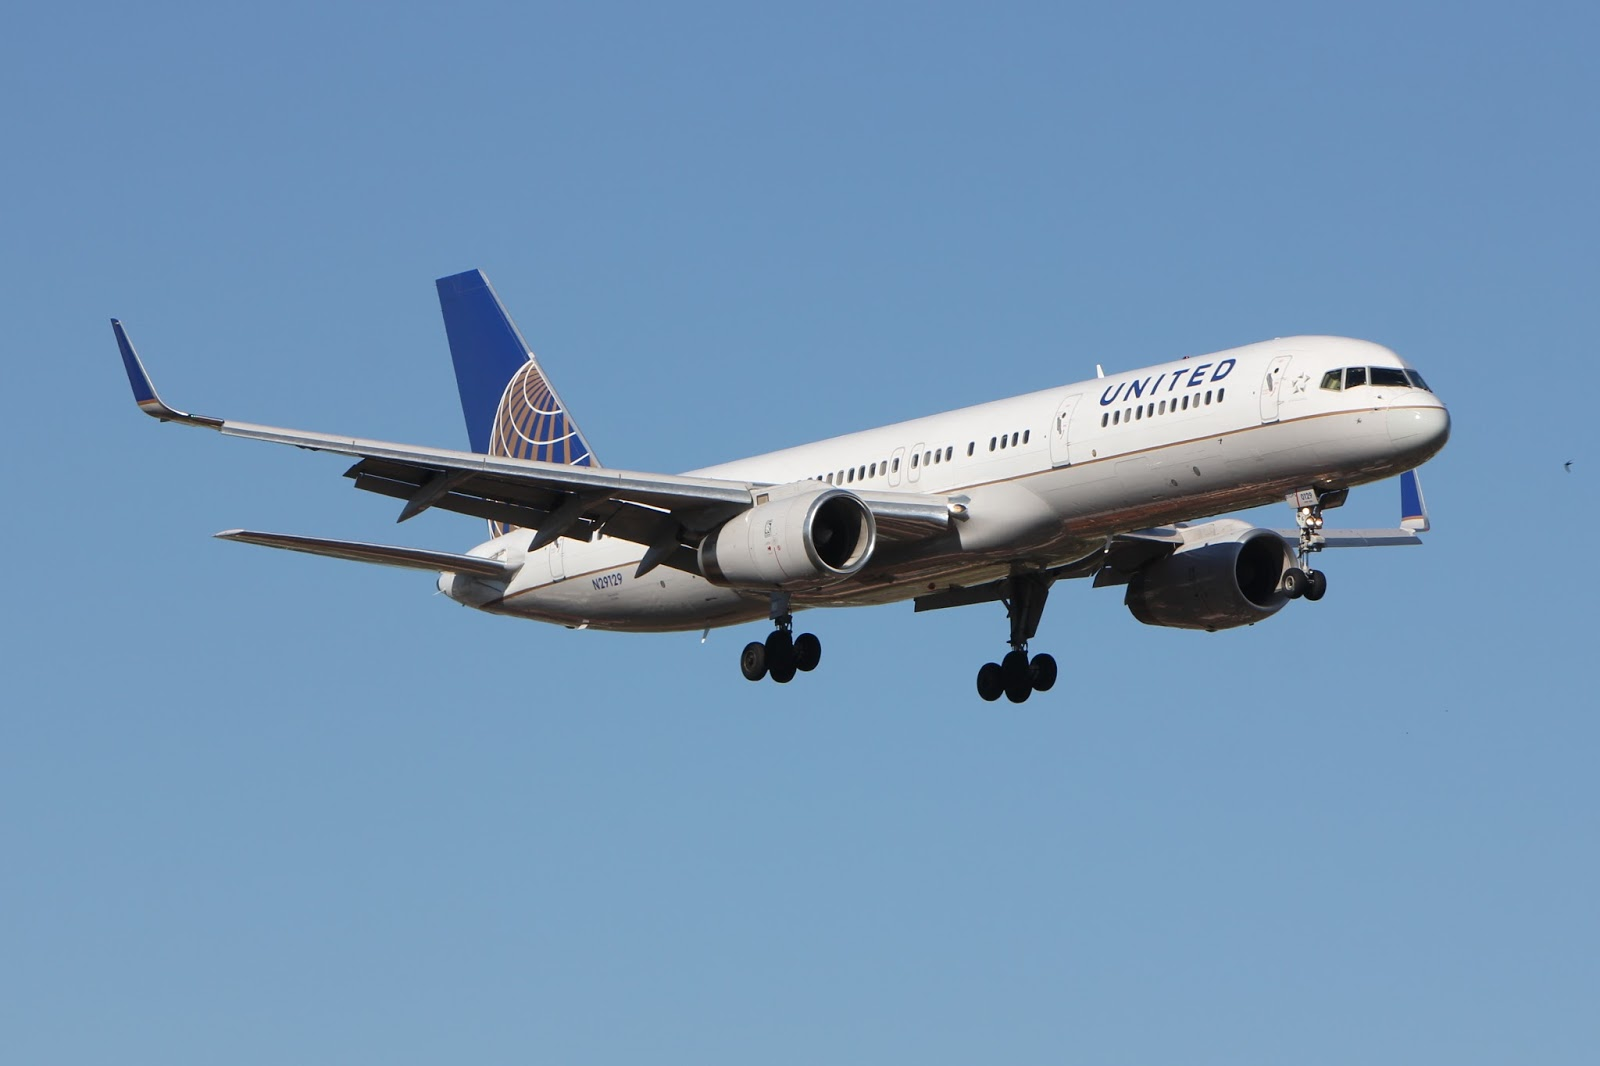 United airlines newark to newcastle